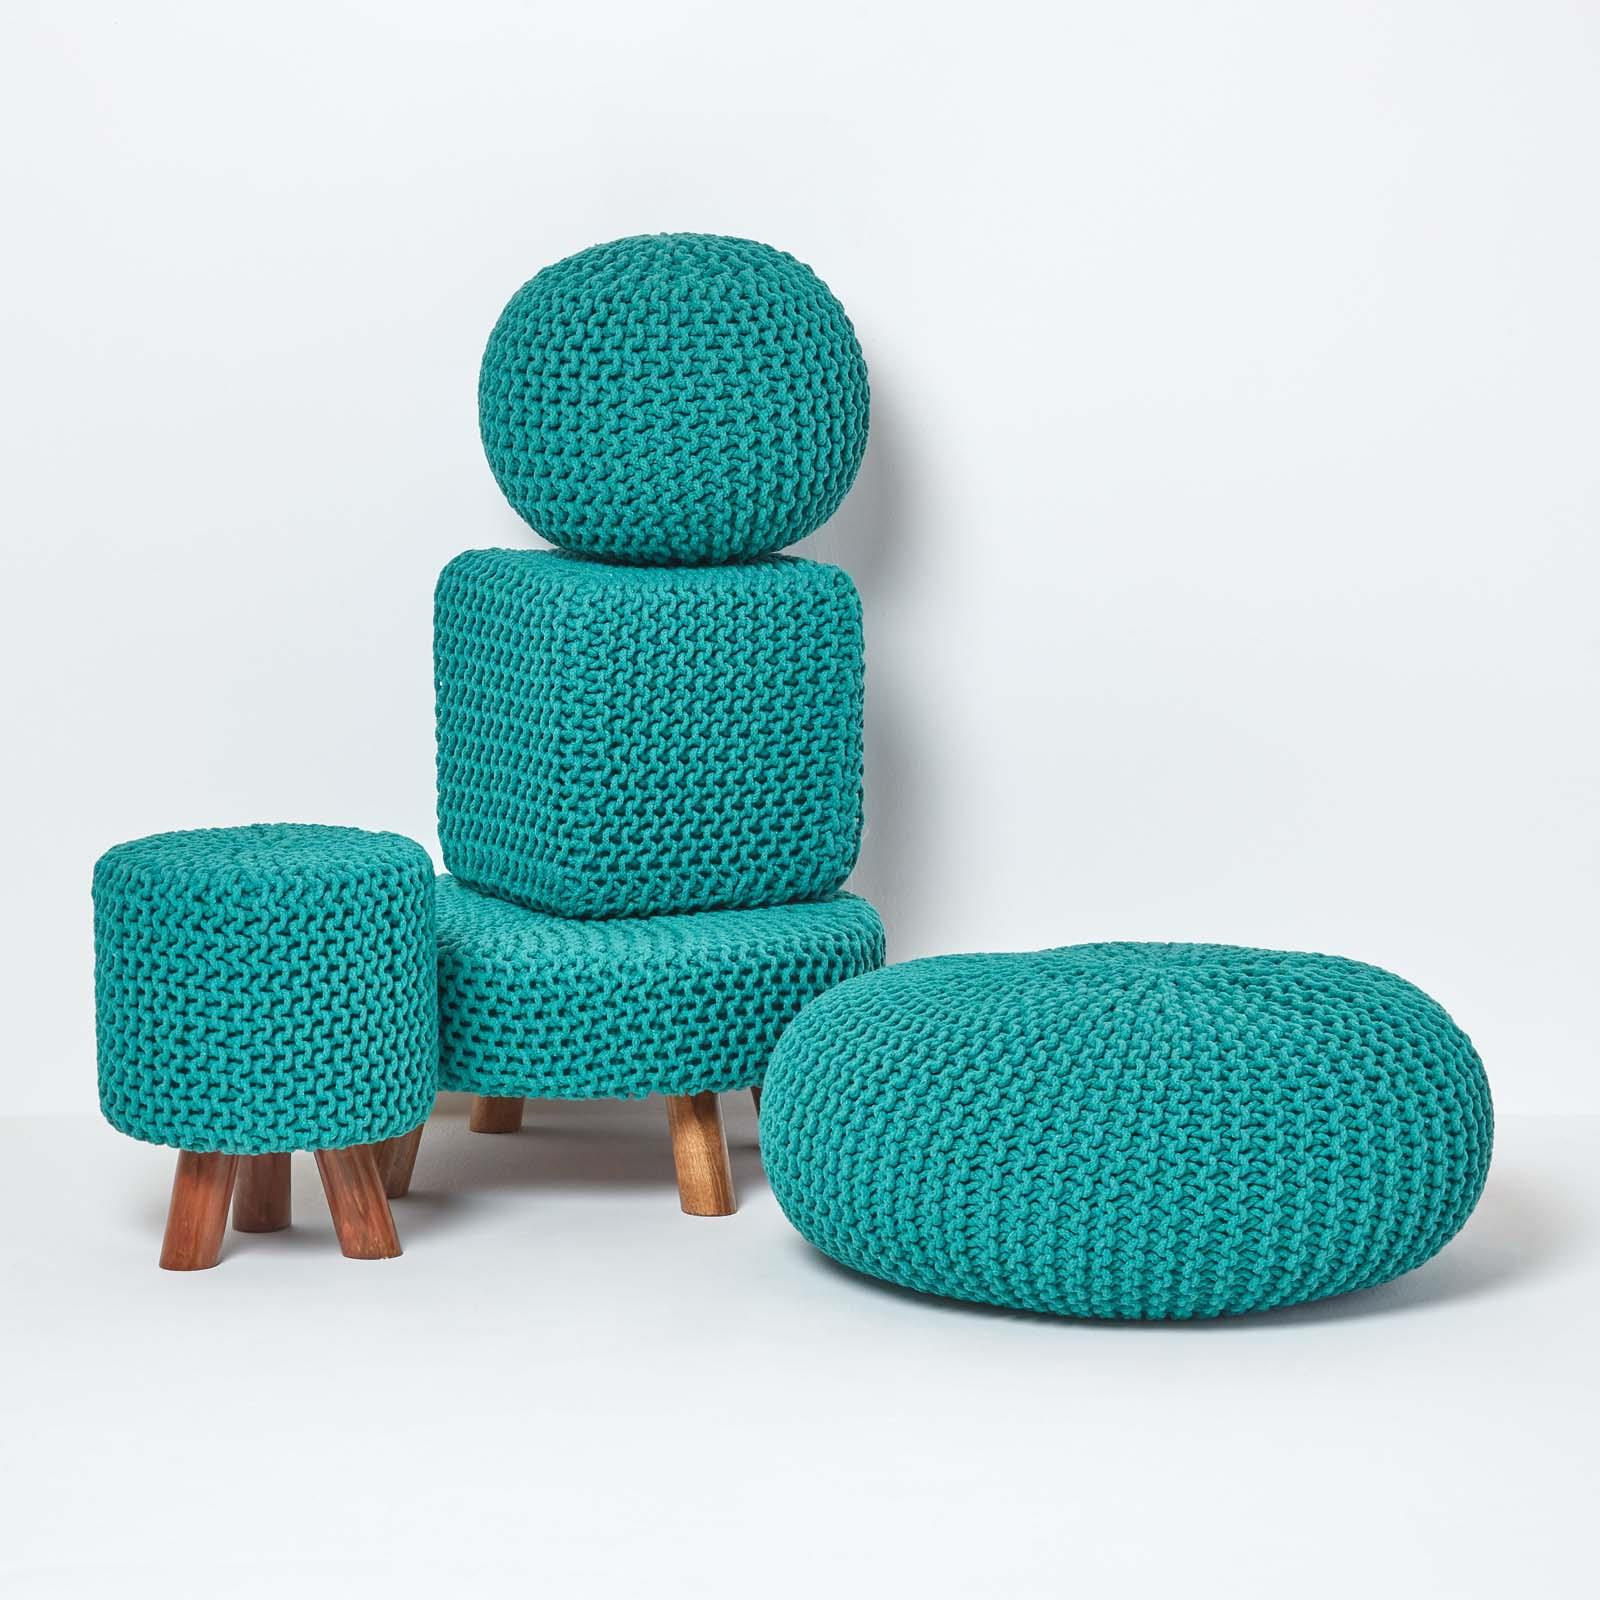 Hand-Knitted-100-Cotton-Pouffes-Round-Sphere-Or-Cube-Square-Chunky-Footstools thumbnail 202